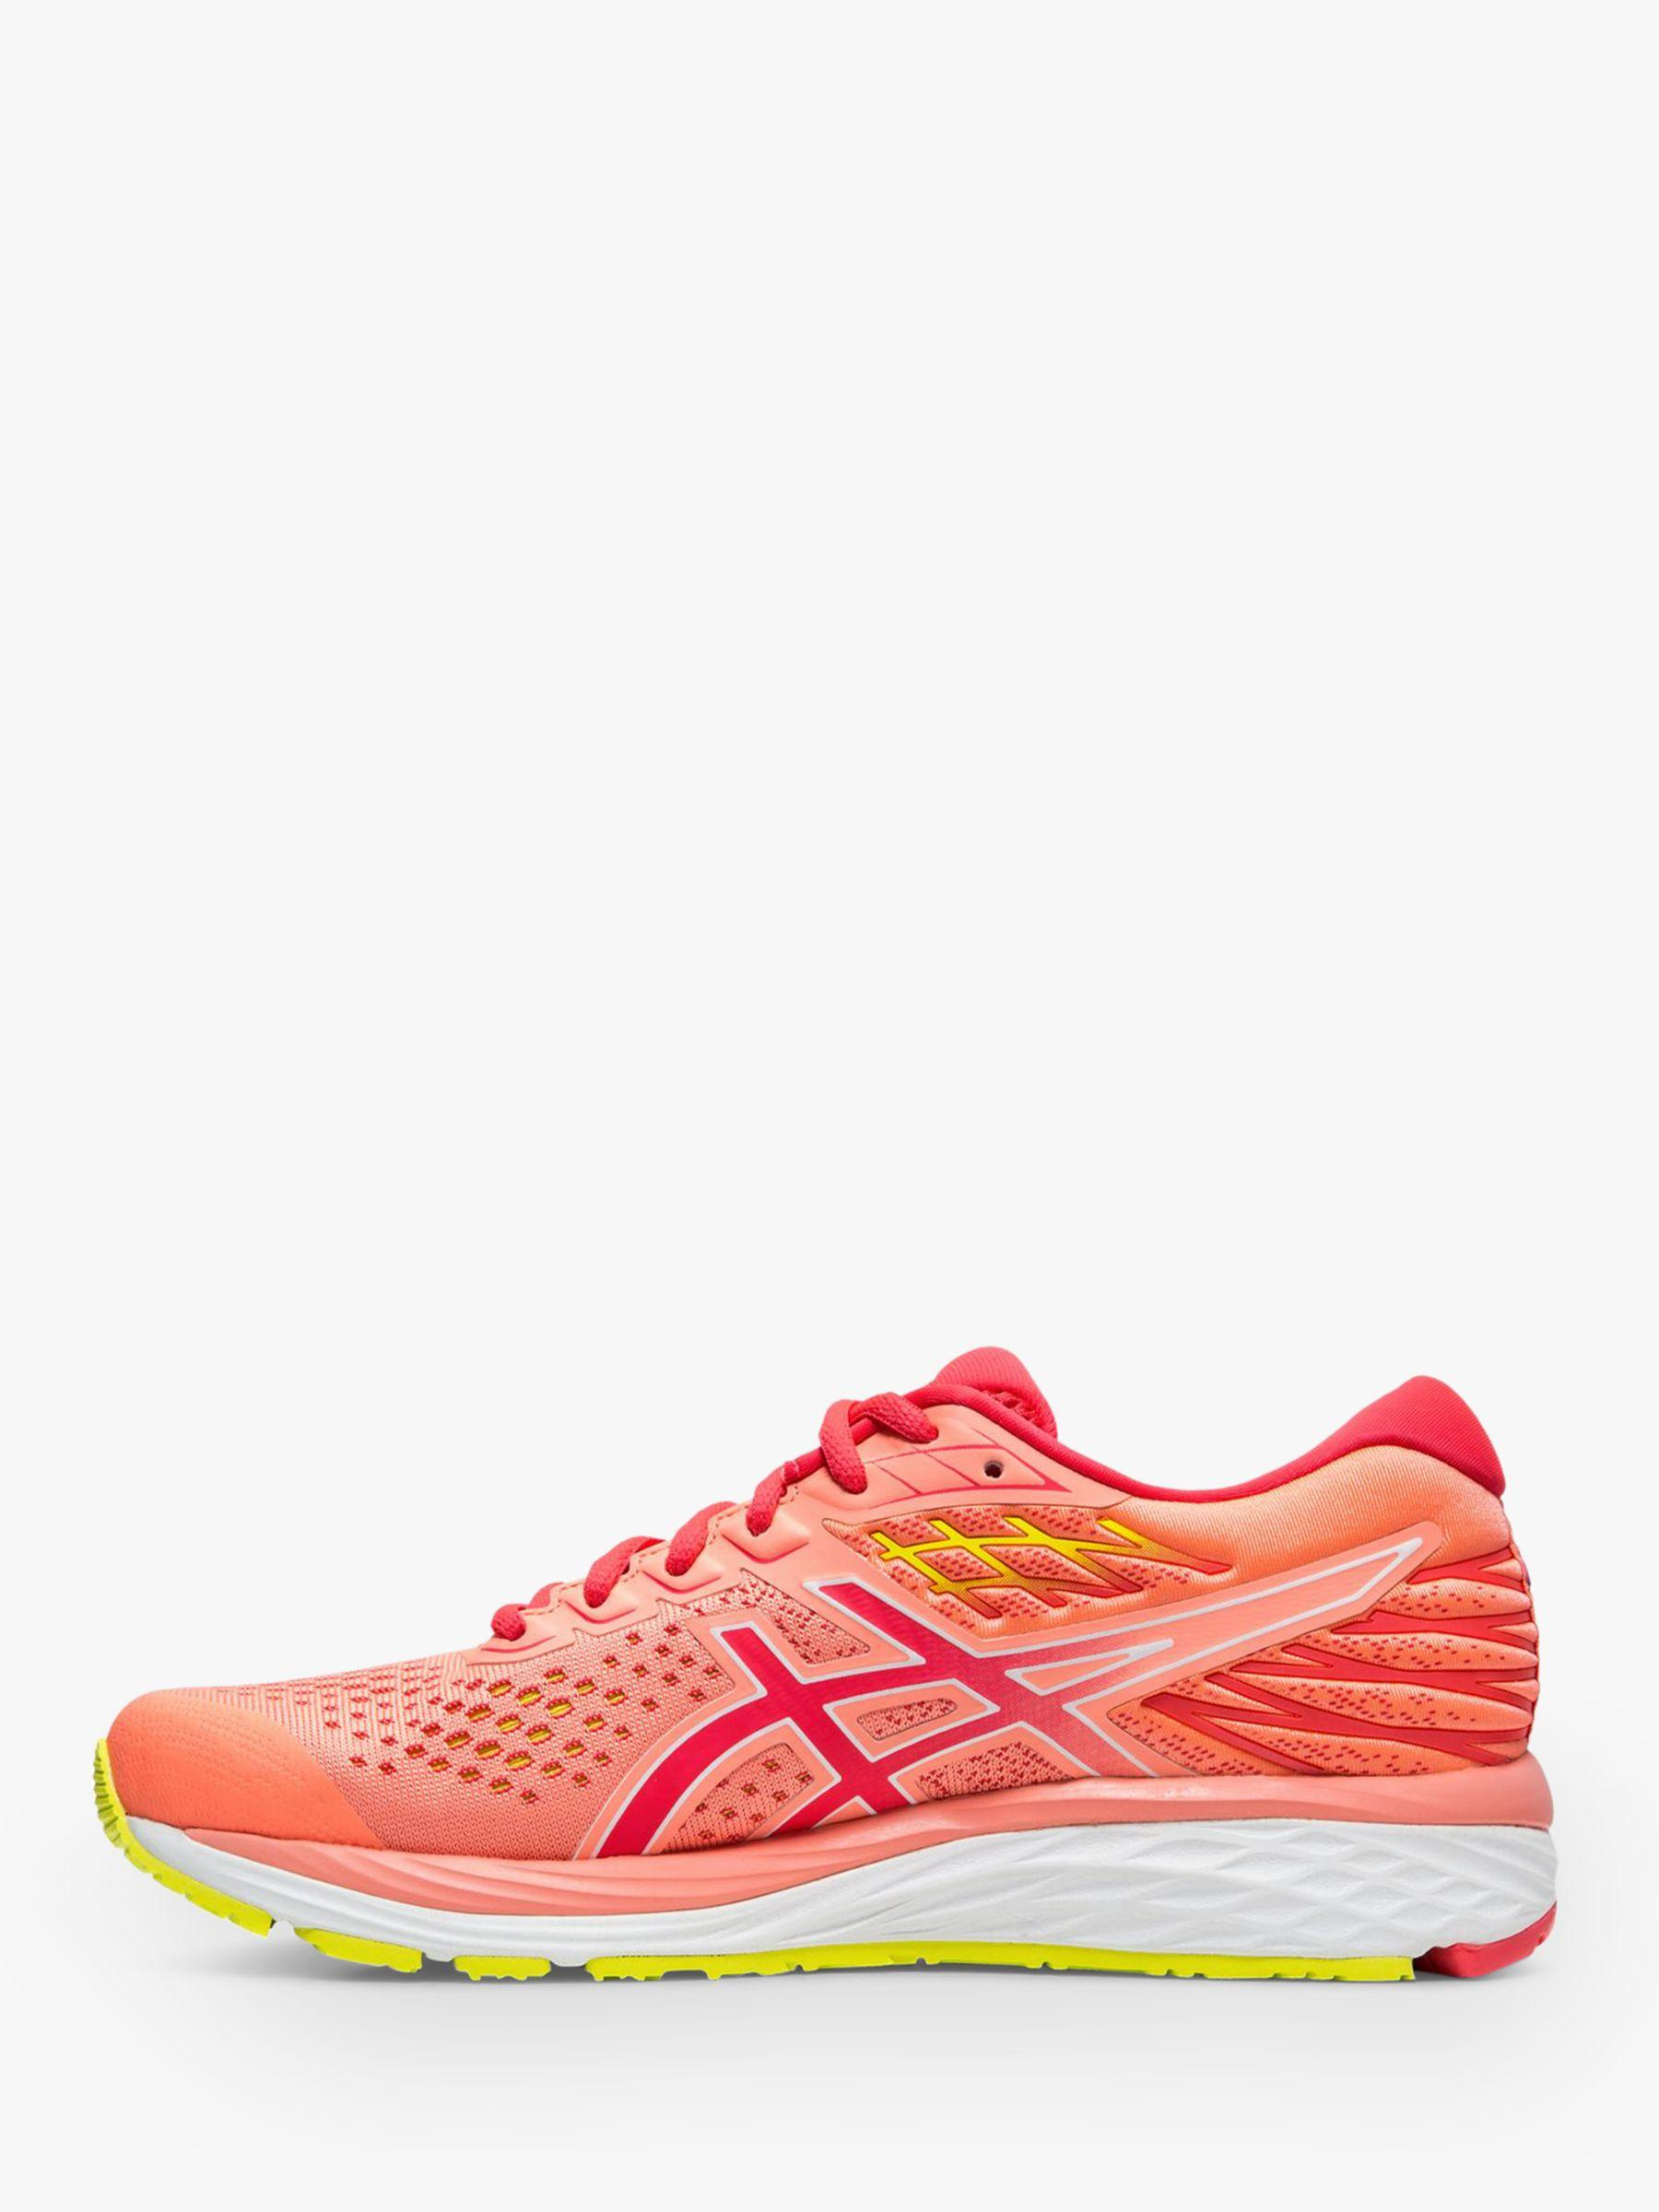 Asics Gel-cumulus 21 Women's Running Shoes in Pink - Lyst